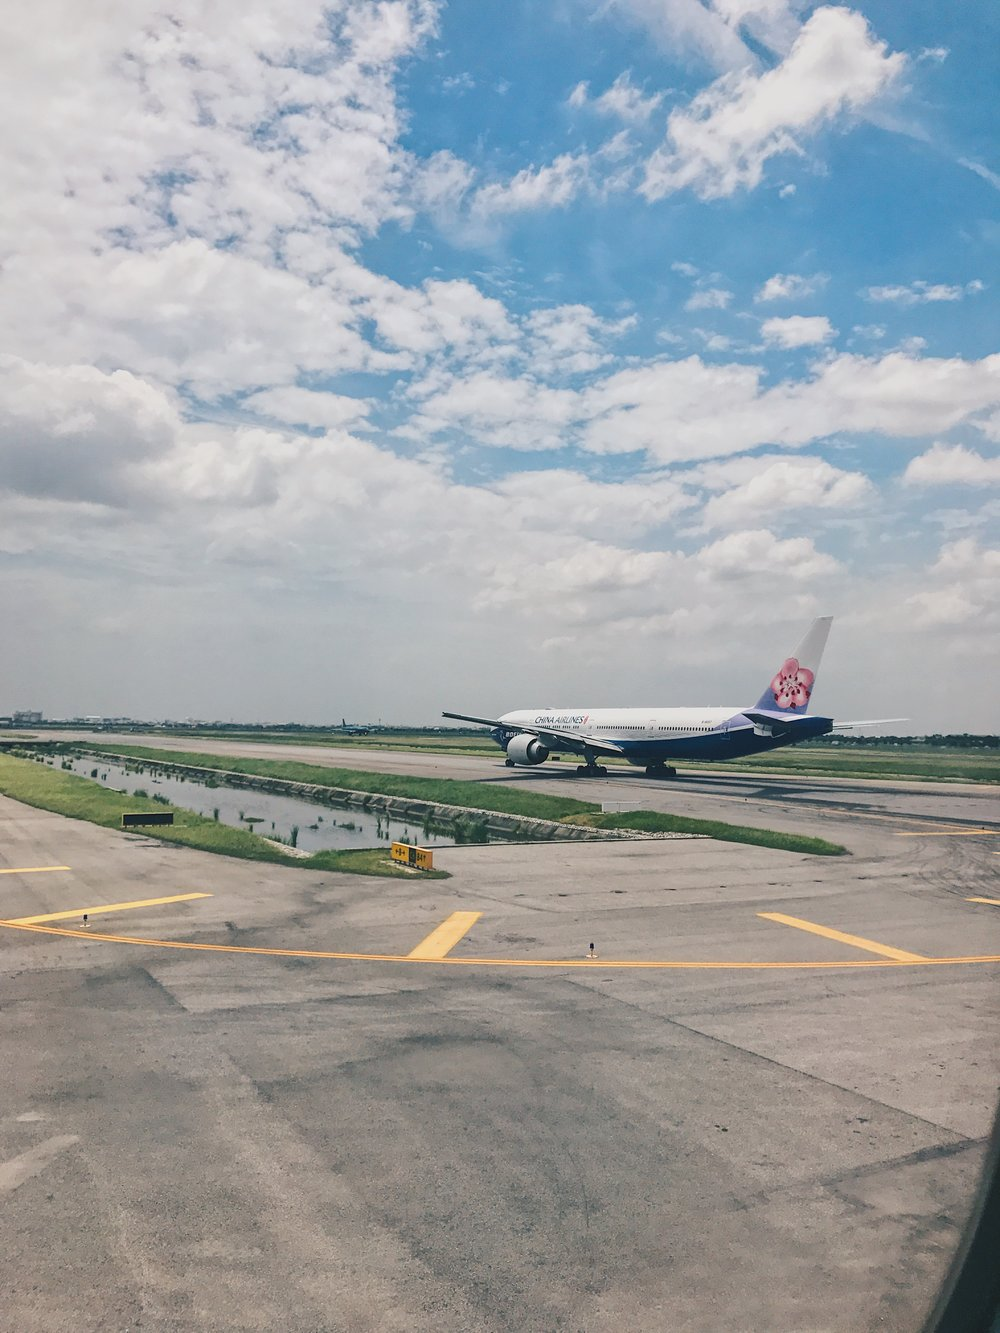 A China Airlines jet taxiing into position